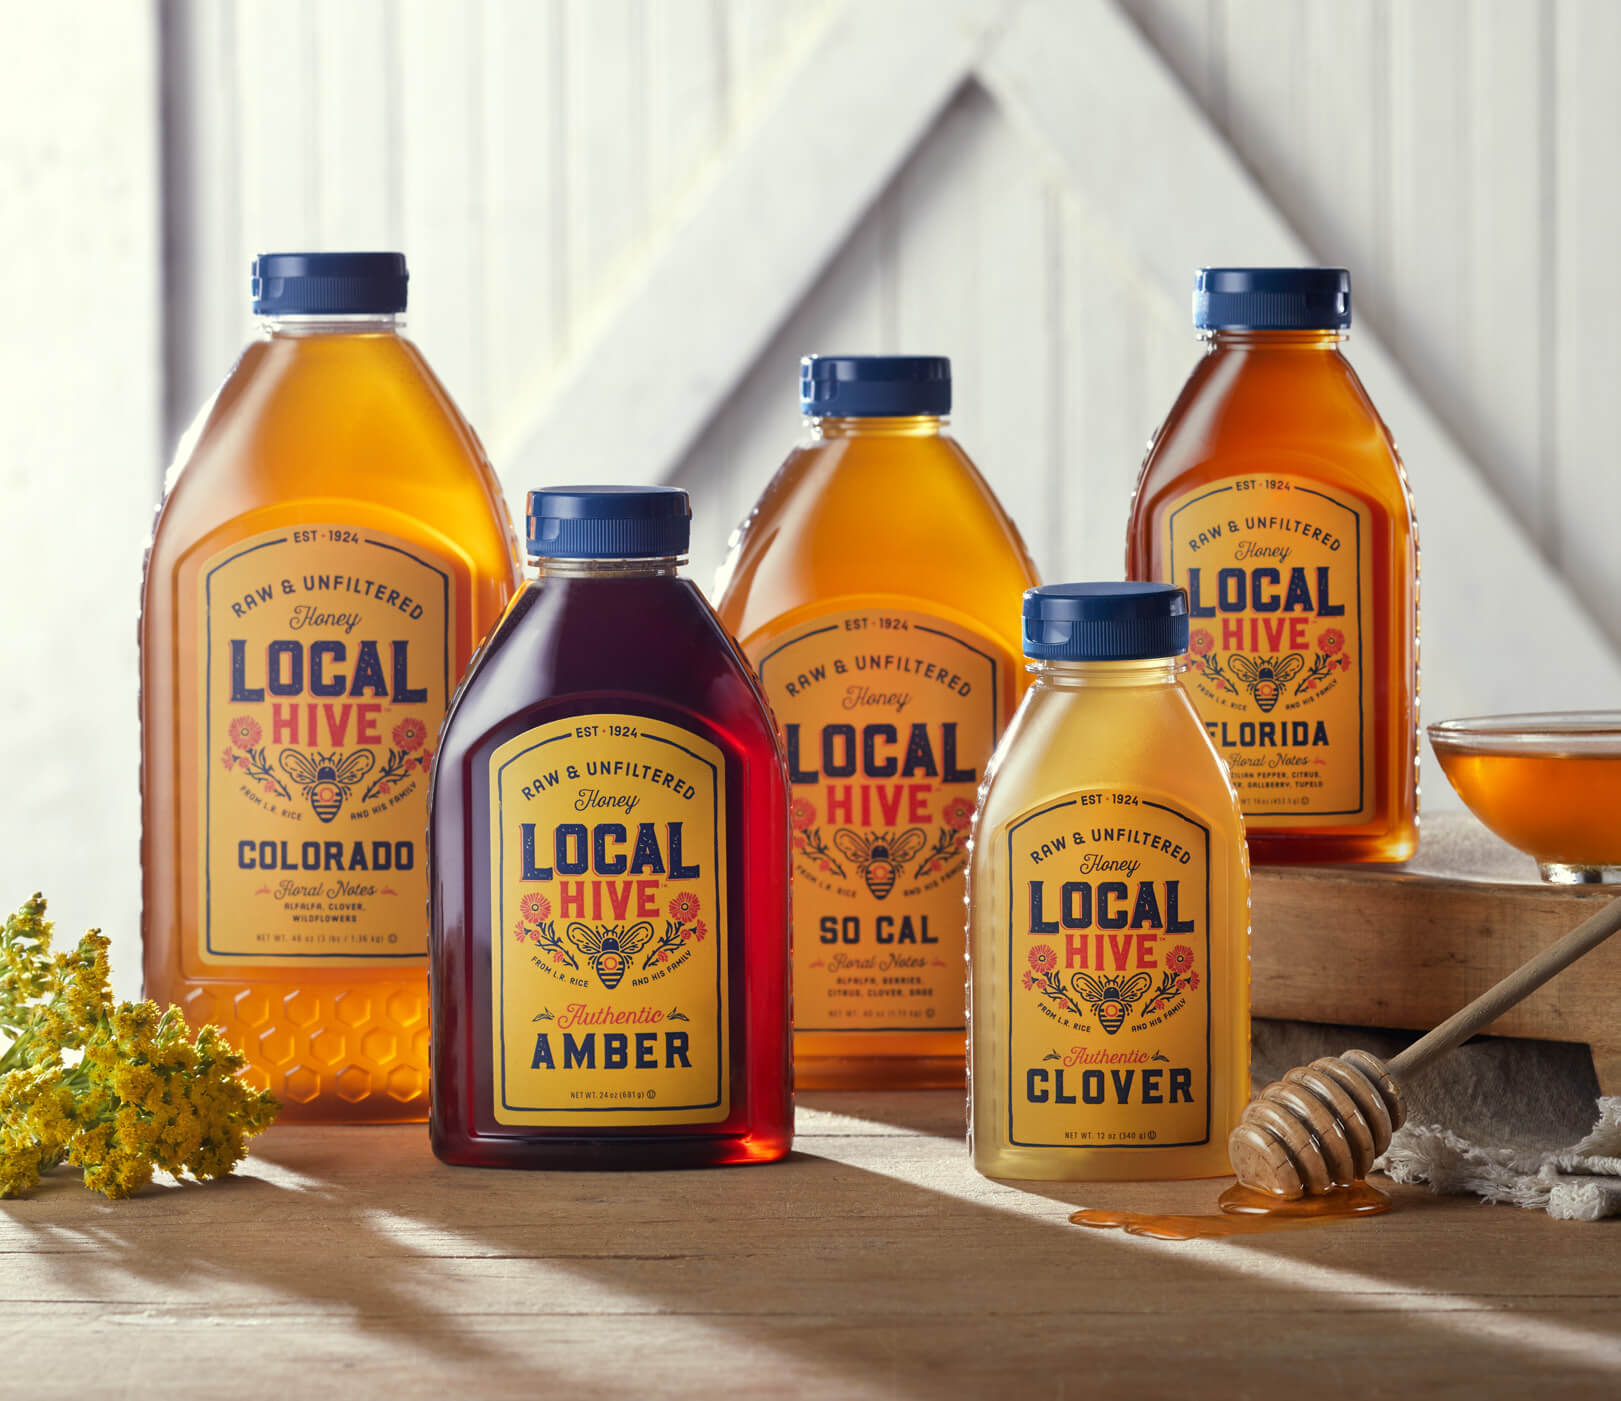 Local Hive bottles